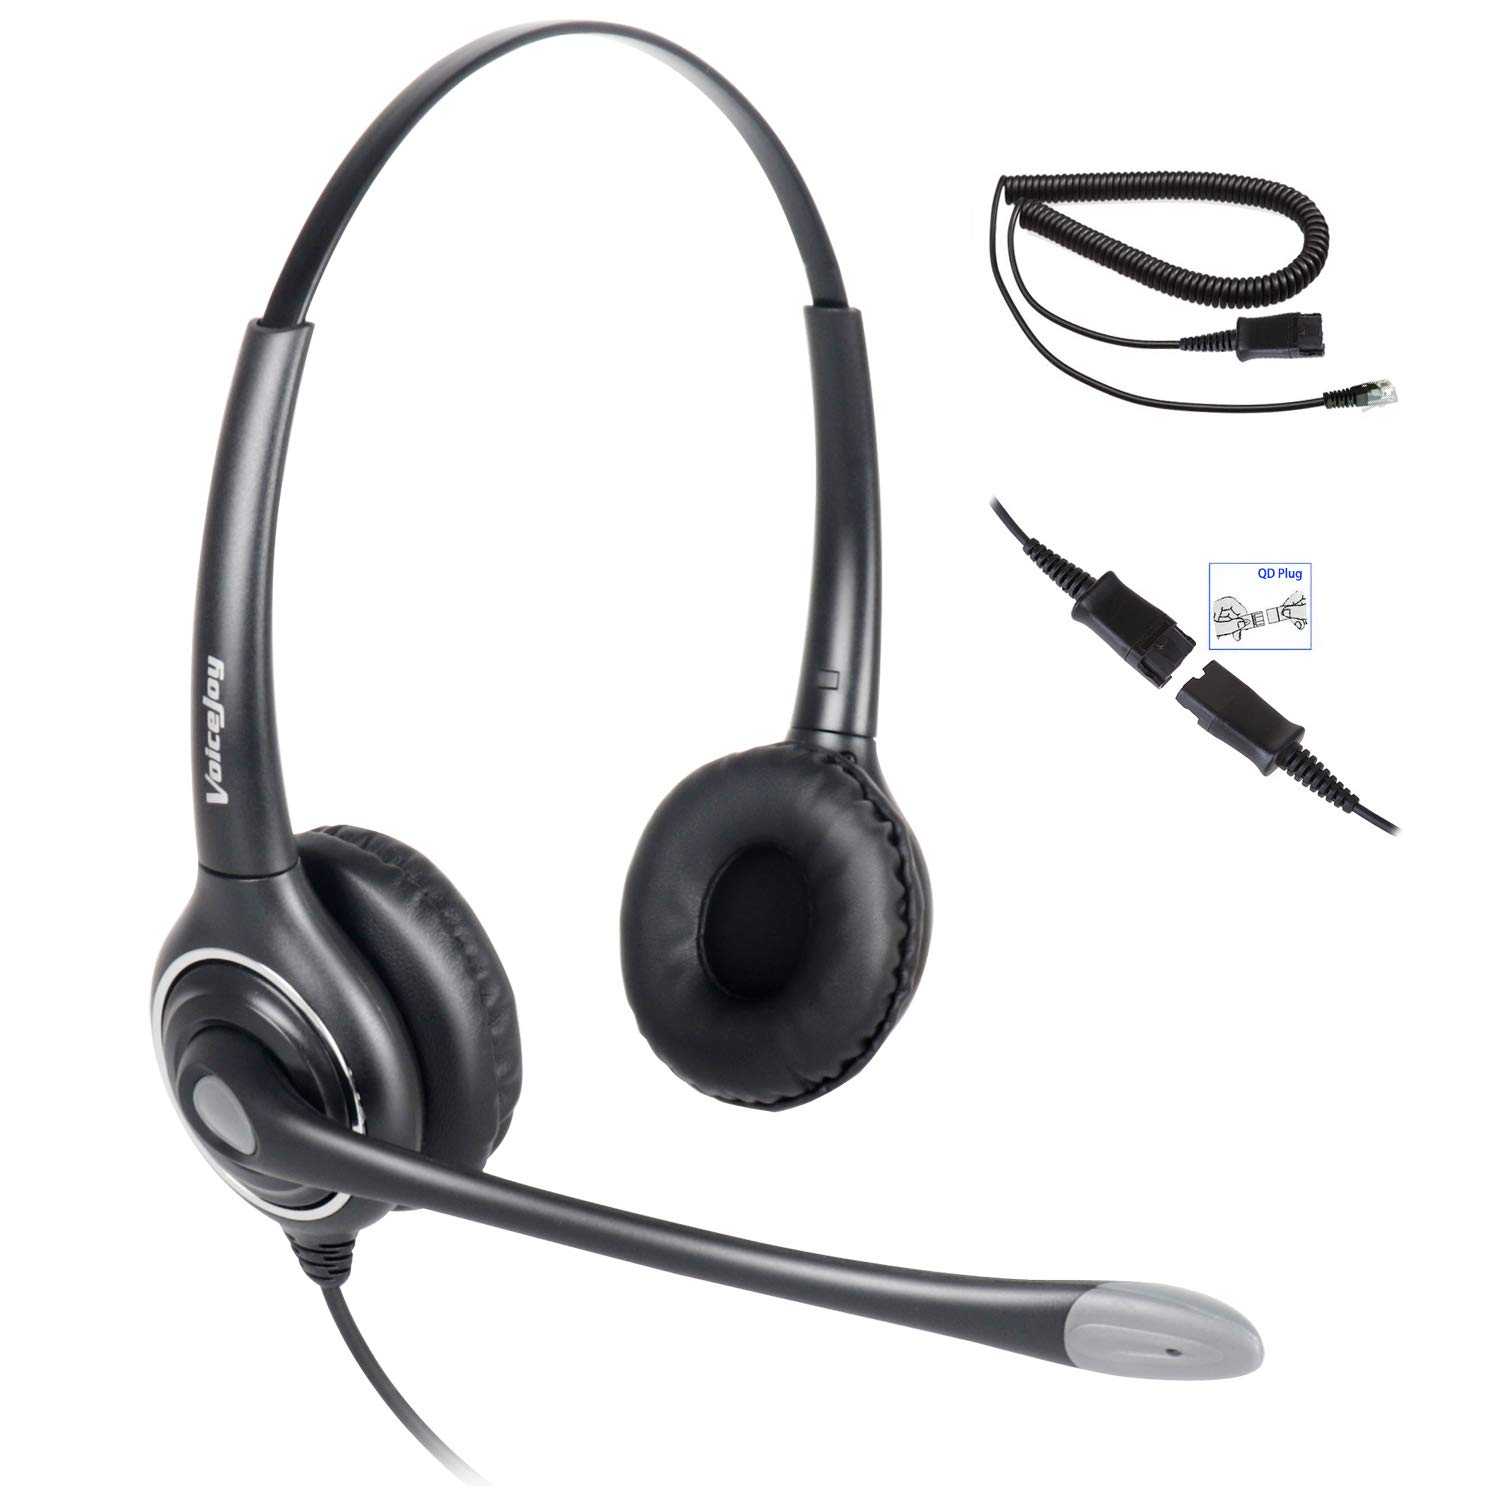 Double Ear Ultra Noise Canceling Call Center/Office Headset & QD Cable for All Cisco 6900, 7800 and 8000 Series Phones and Also Models 7940 7941 7942 7945 7960 7961 7962 7965 7970 7975 etc by VoiceJoy